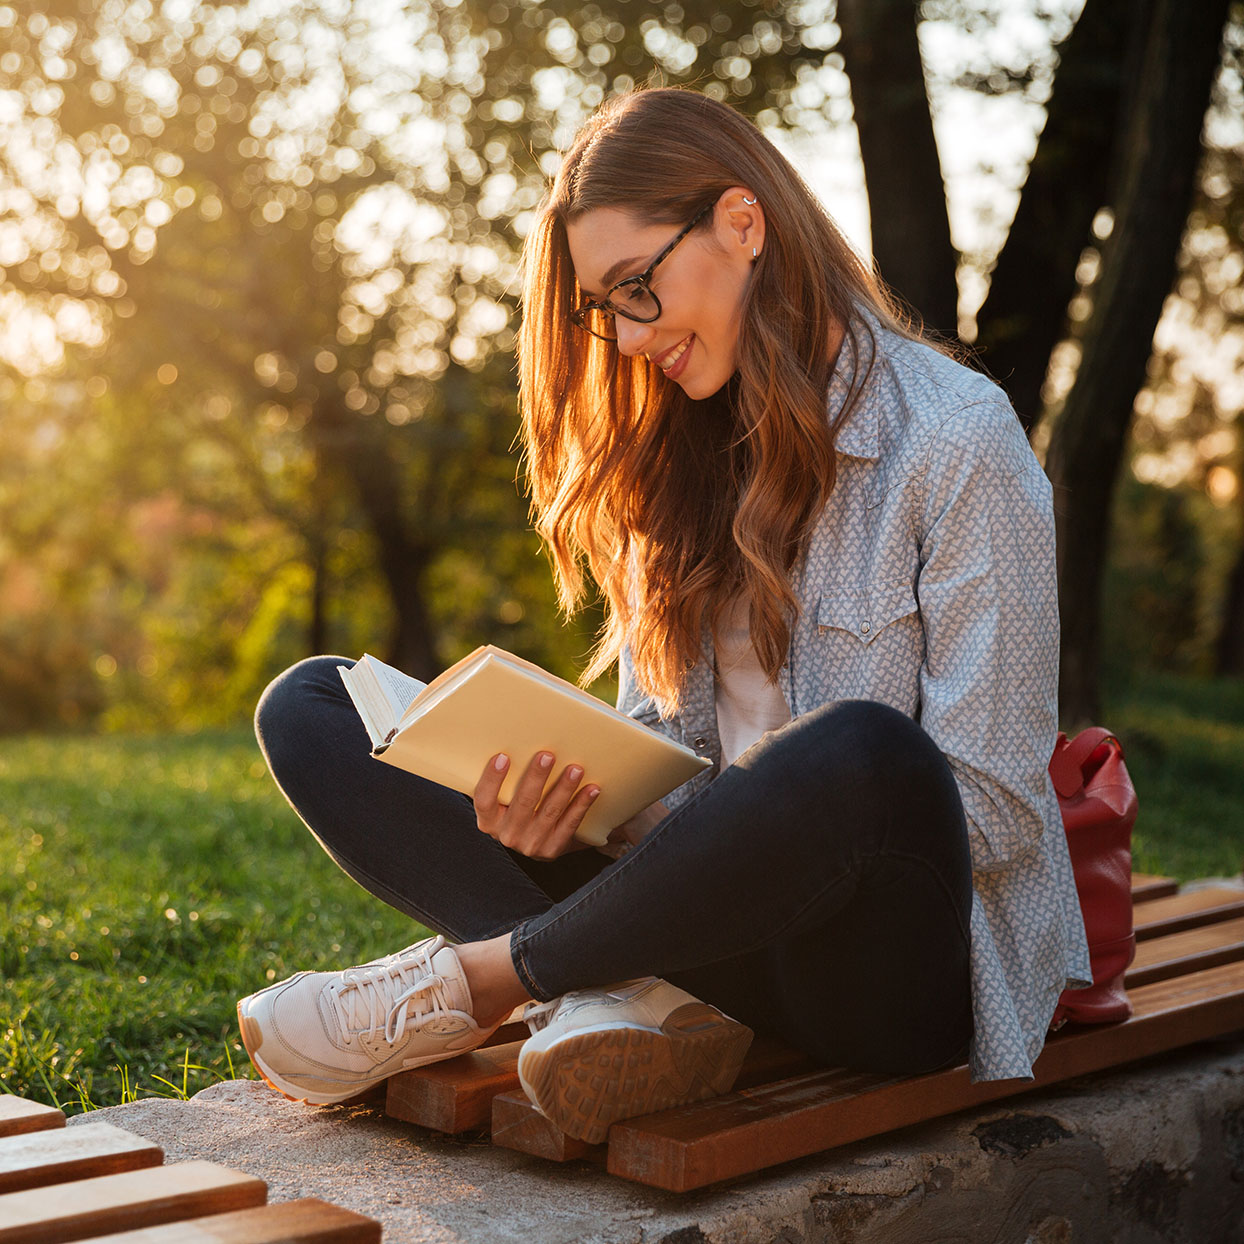 A woman smiles while reading